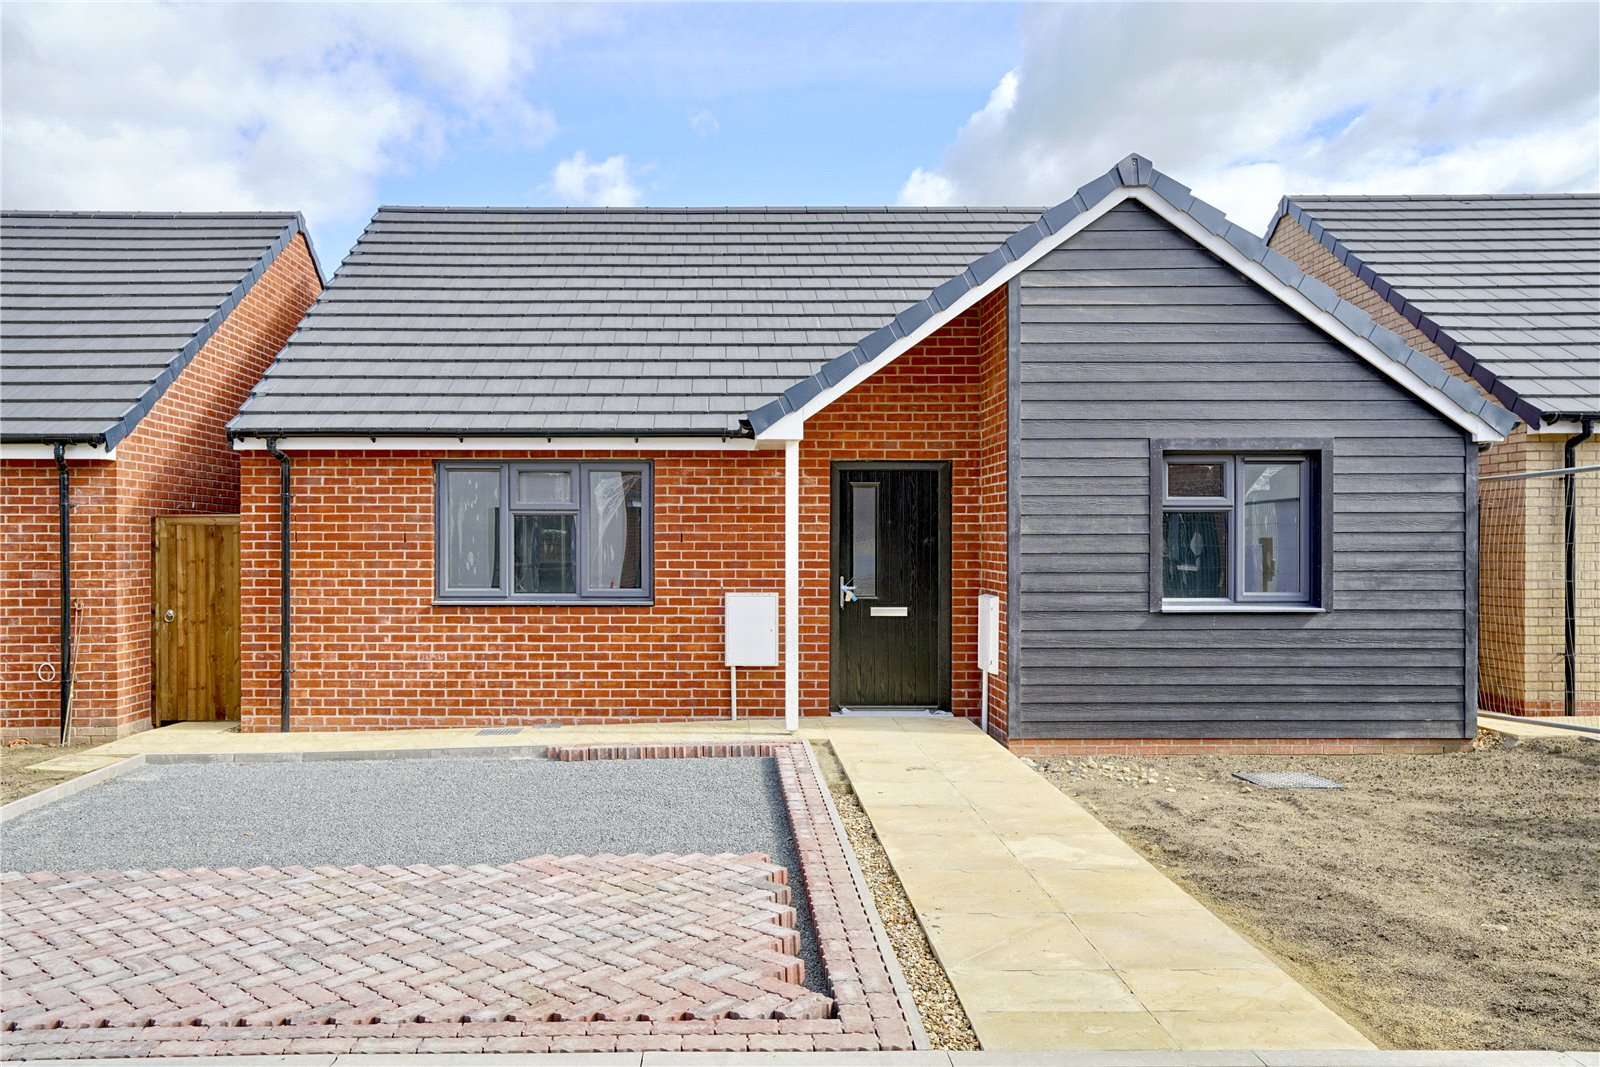 3 bed bungalow for sale in Whittlesey, PE7 1RU 0